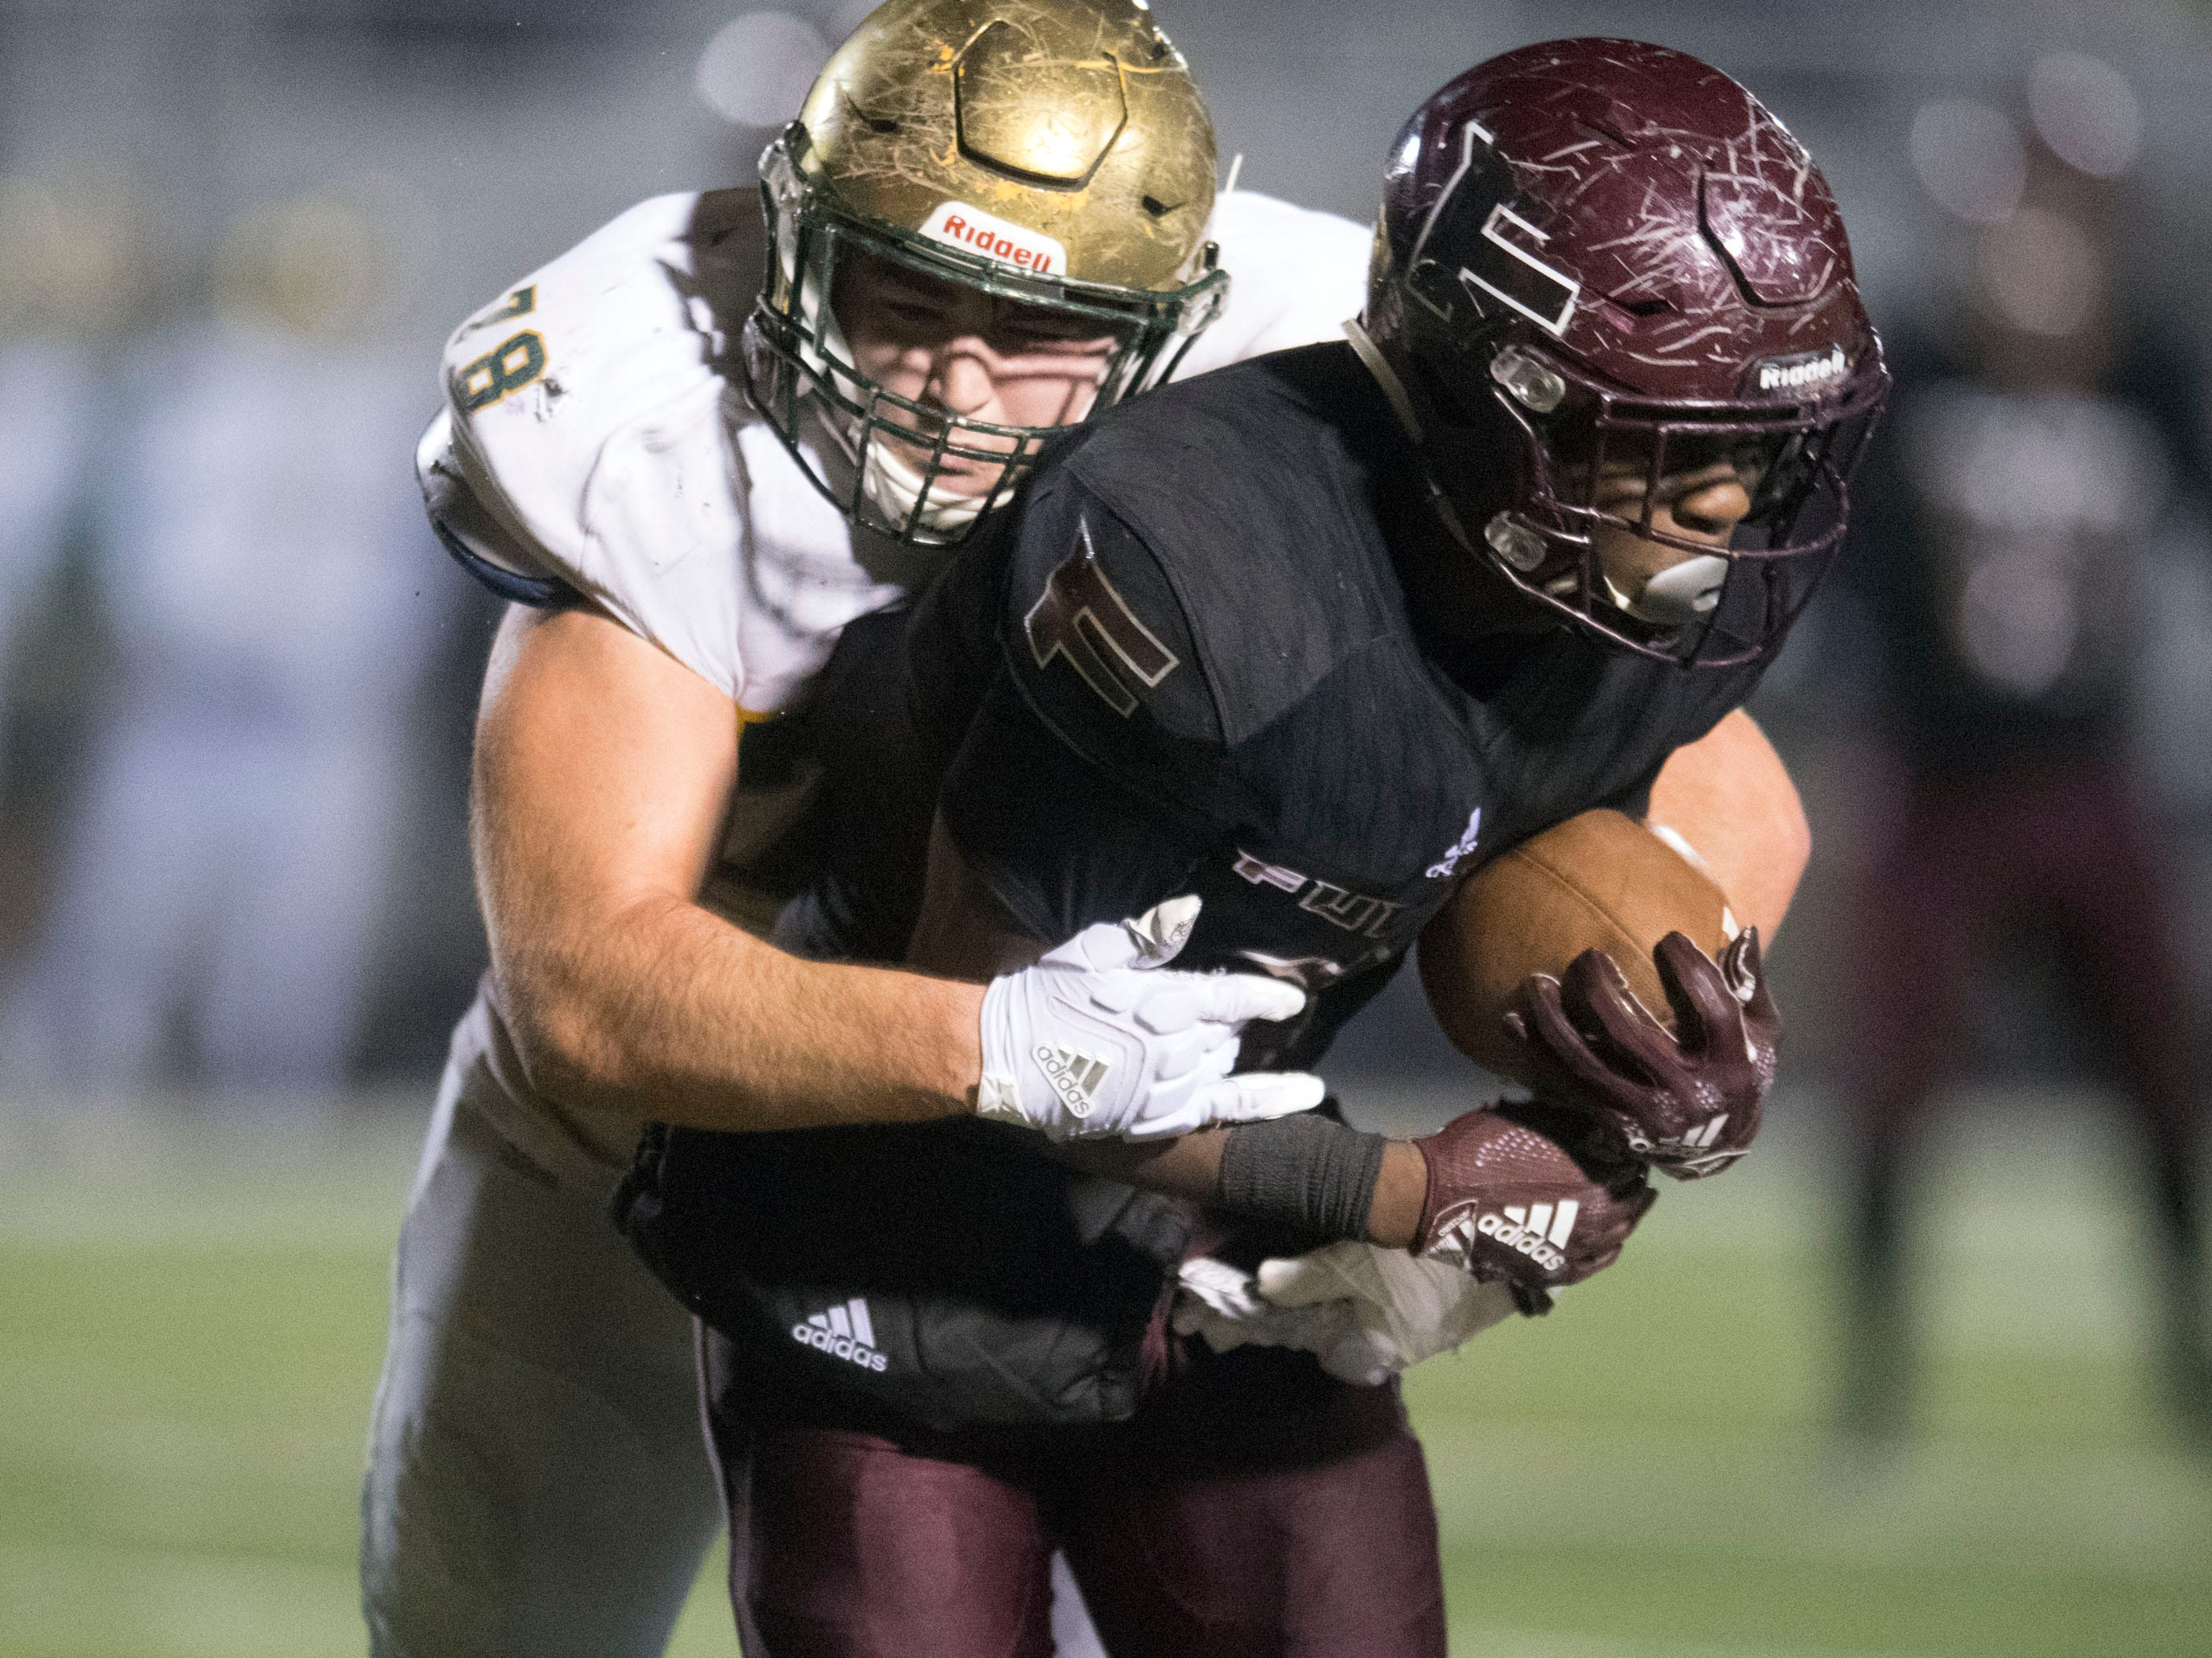 Fulton's DeShawn Page (6) is tackled by Knoxville Catholic's Cooper Mays (78). Knoxville Catholic beat Fulton, 28-25 in the second round of the Class 5A playoffs on Friday, November 9, 2018.